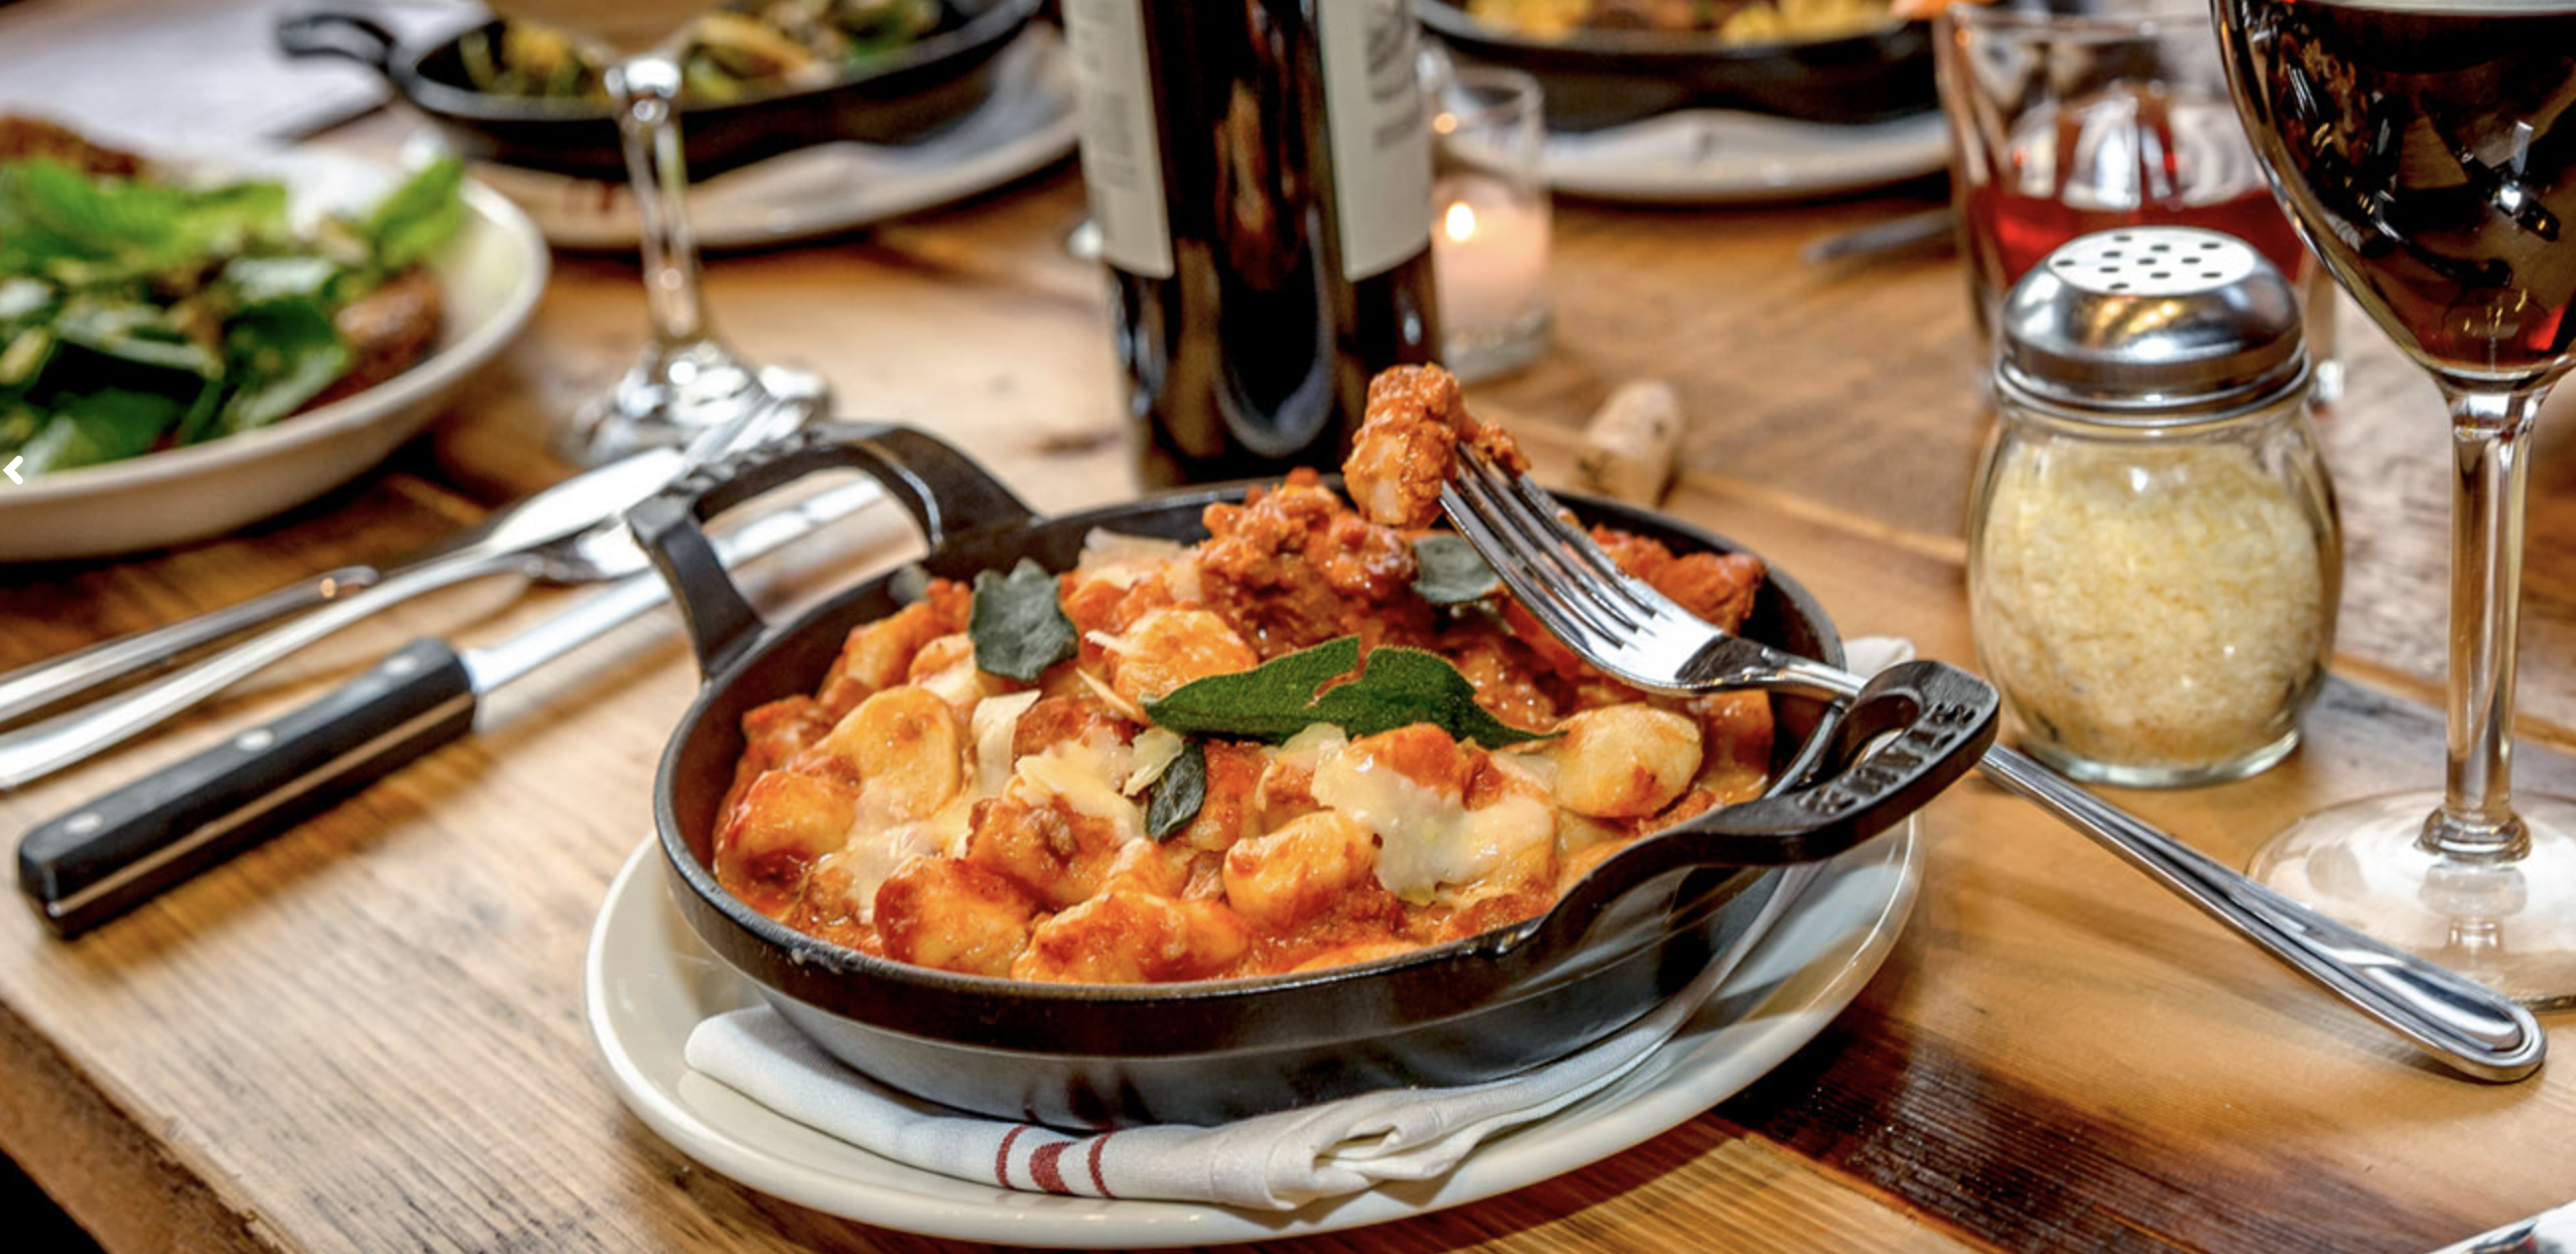 A cast-iron pan is filled with pasta, and sits atop a wooden table. It is accompanied by silverware, a shaker of parmesan, and a bottle of wine.